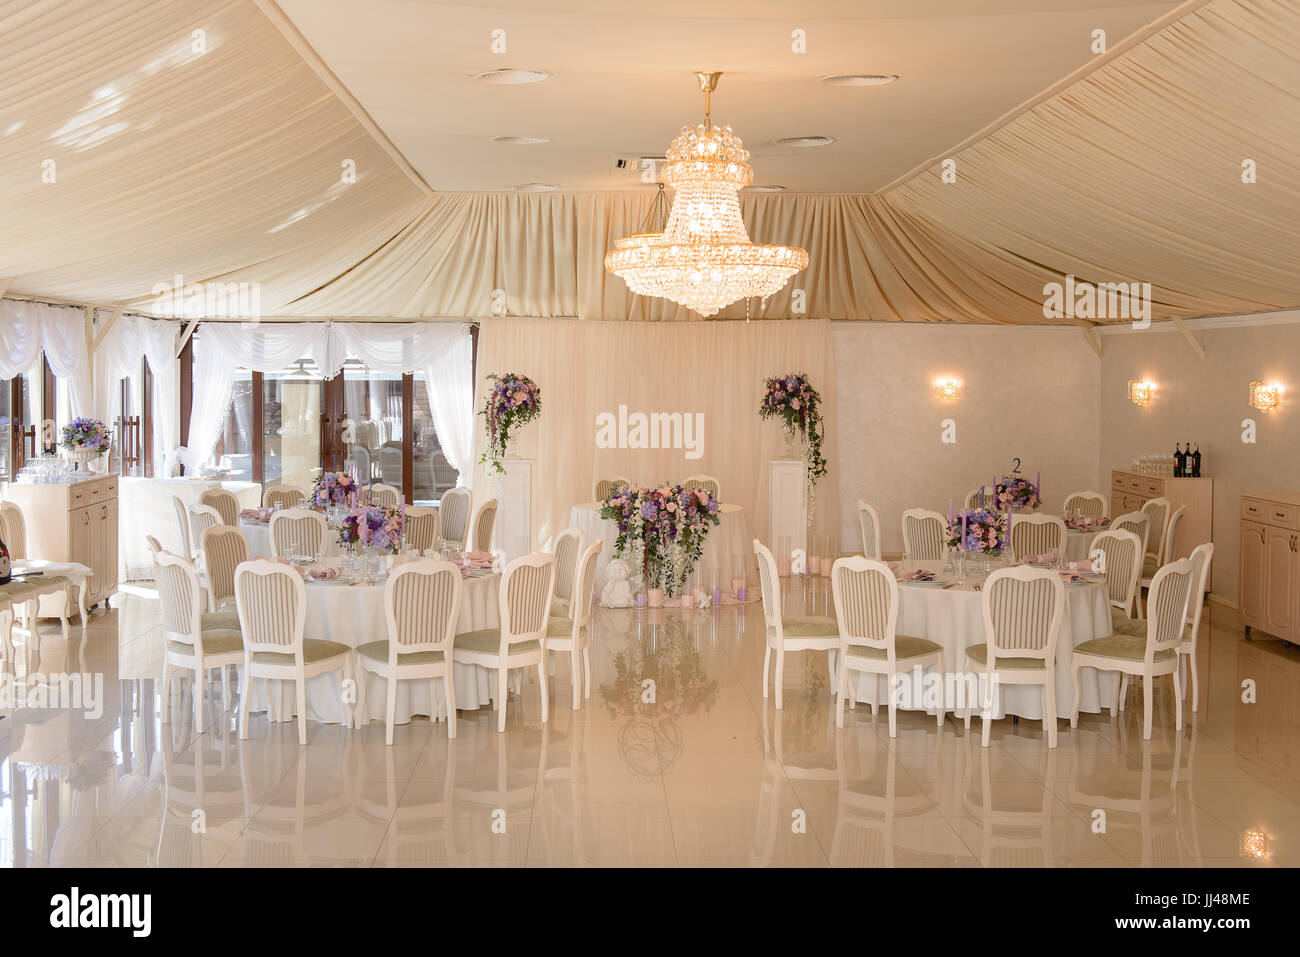 Interior of a wedding decorated restaurant in cream colors - Stock Image